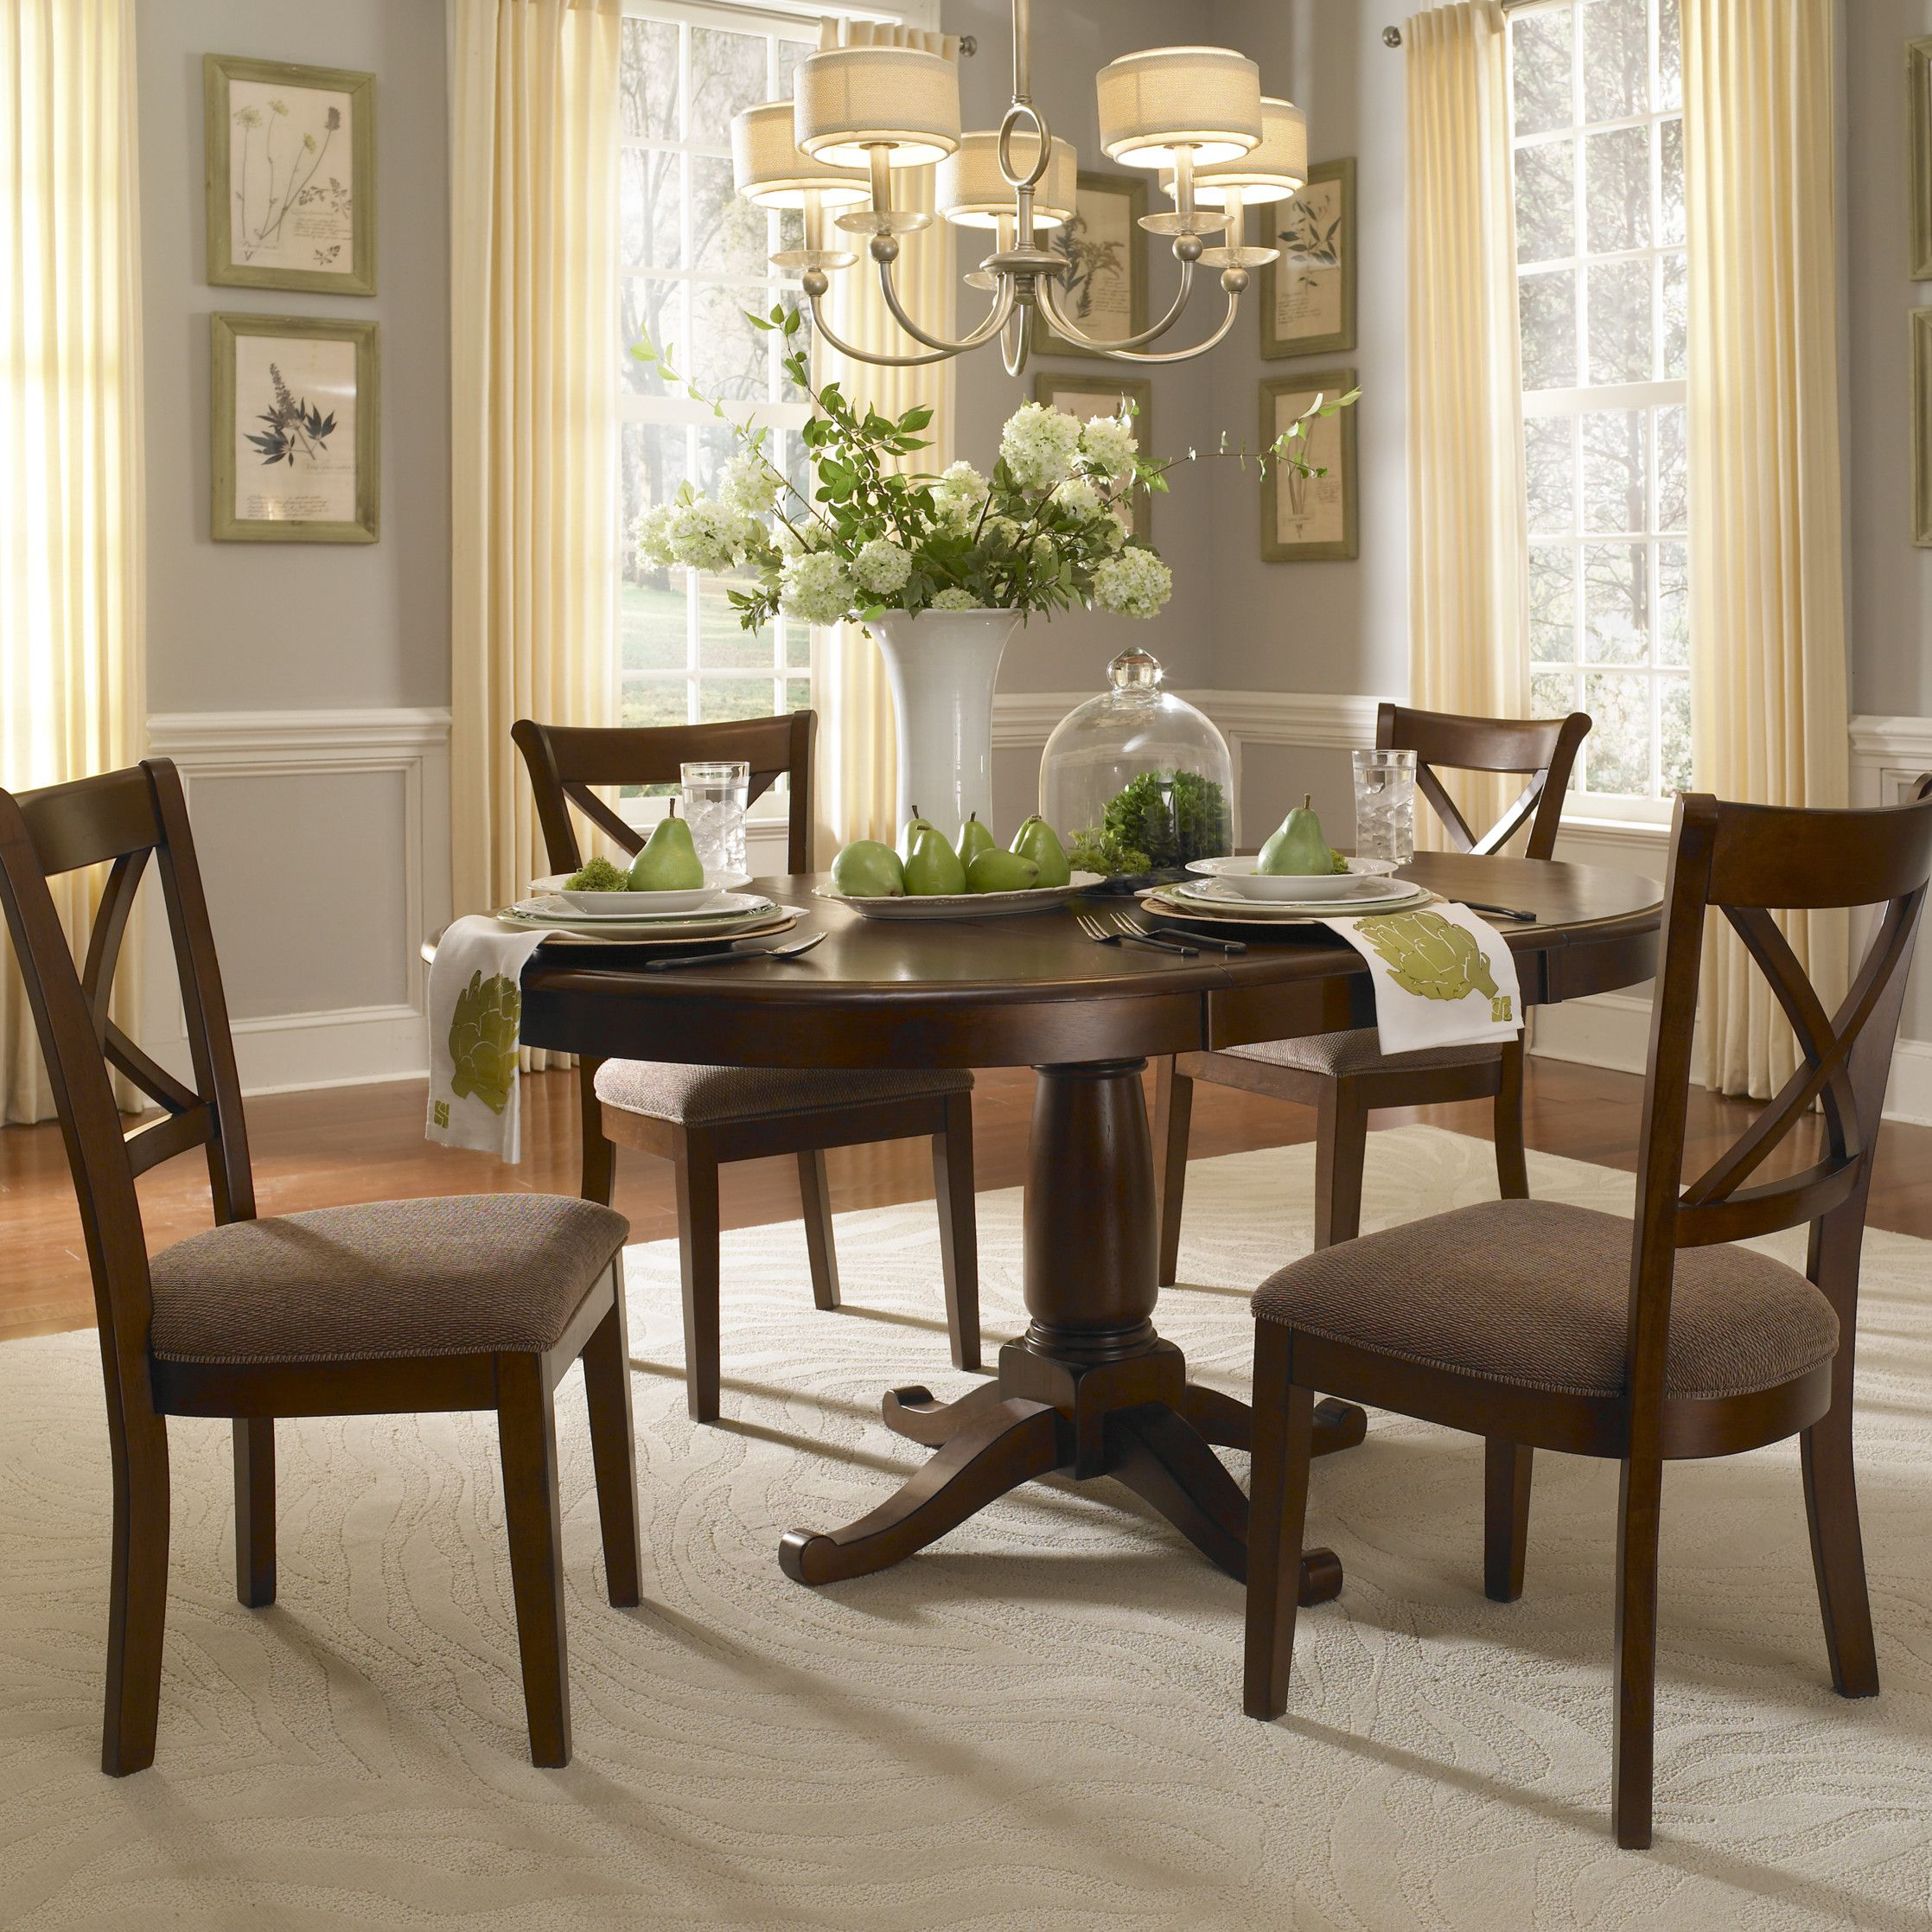 Desoto Extendable Dining Table  Extendable Dining Table Captivating Extendable Dining Room Sets Decorating Inspiration